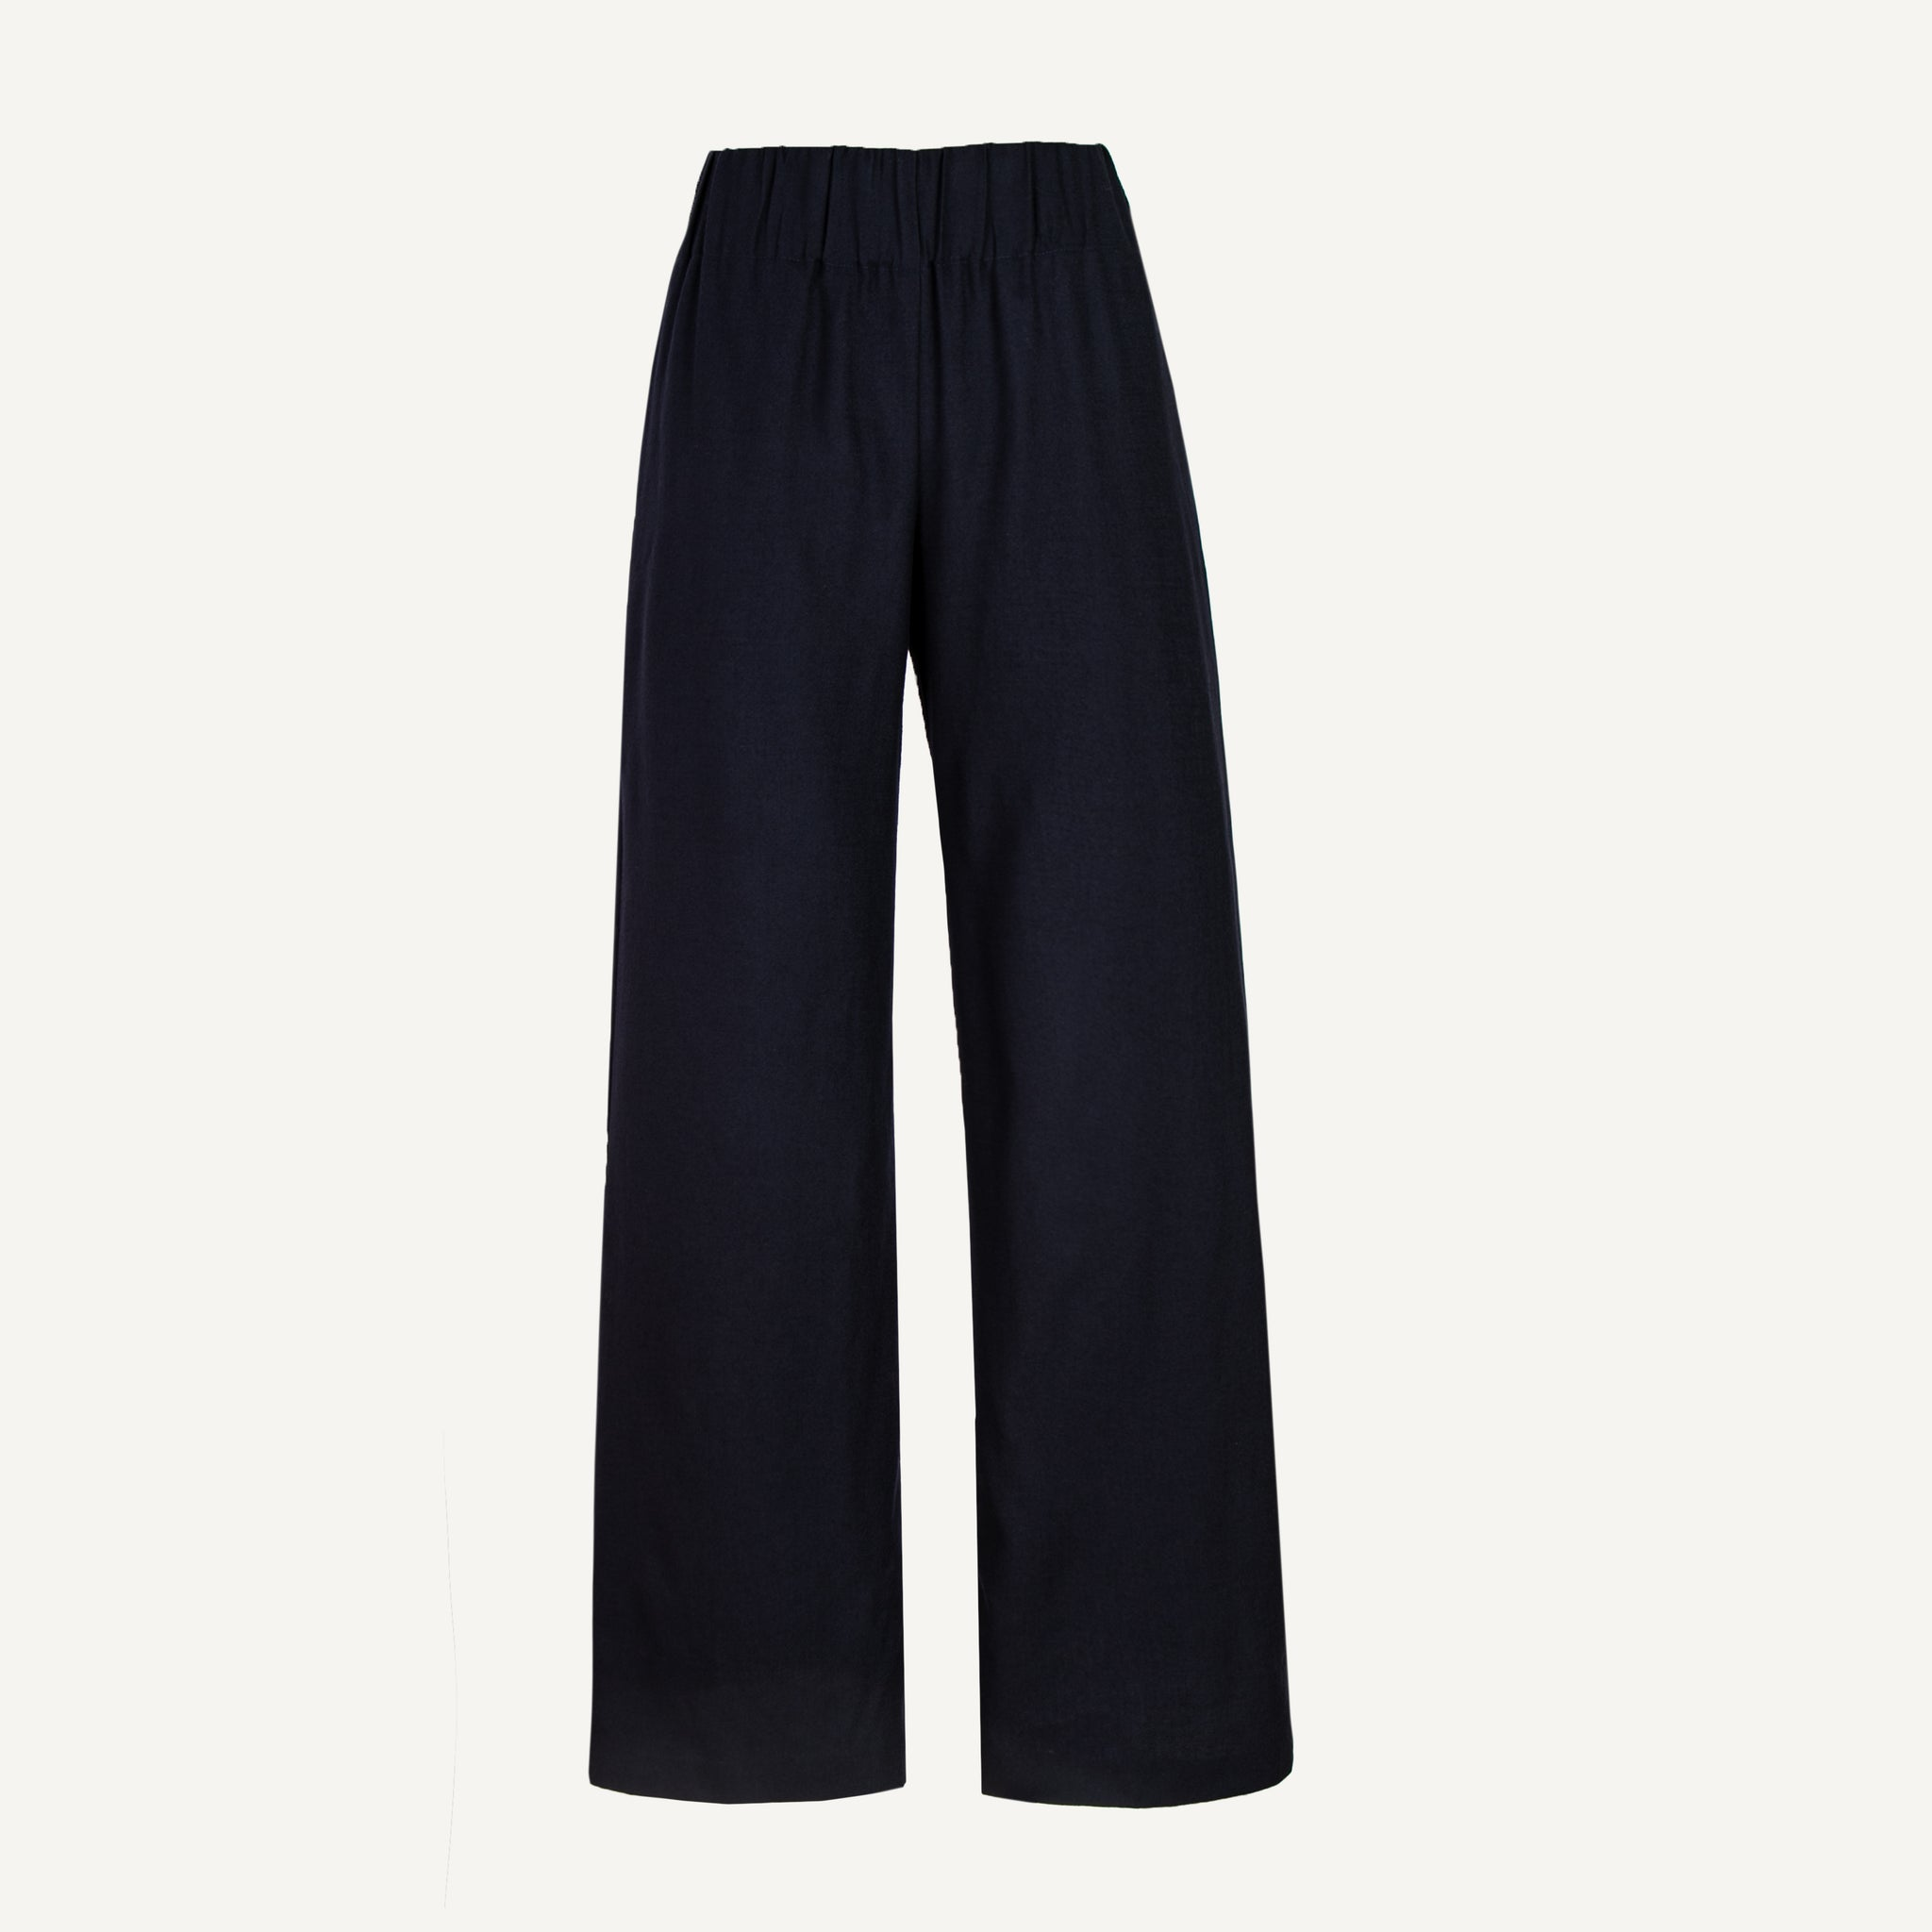 ASPESI WOMEN'S LONG WOOL TROUSERS